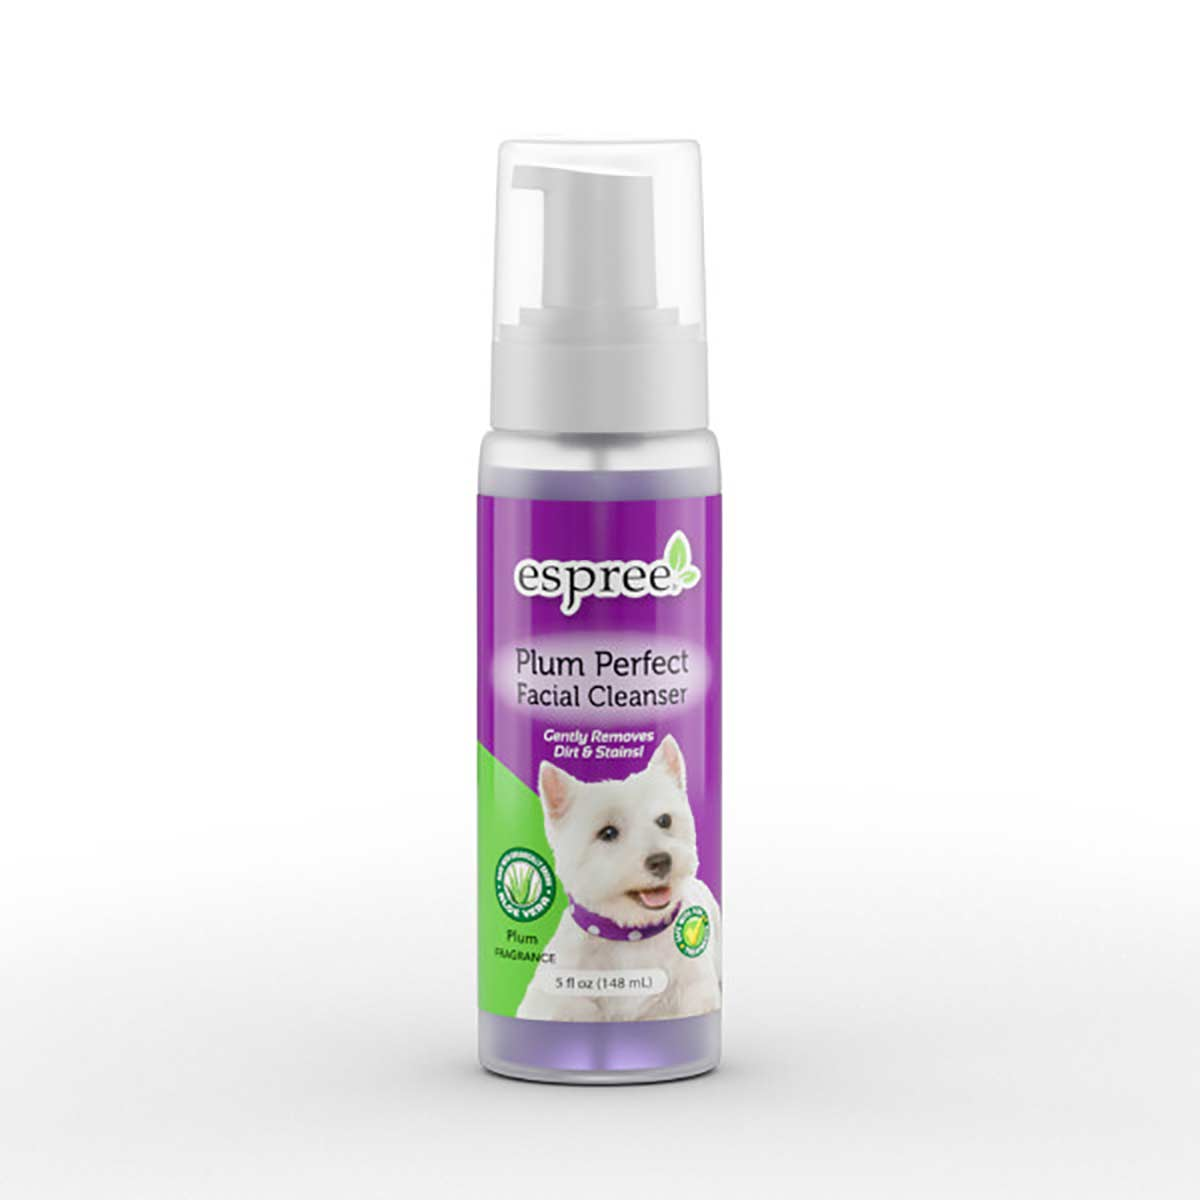 Espree Scent Renewal Plum Perfect Facial Cleanser for Dogs - 5 oz